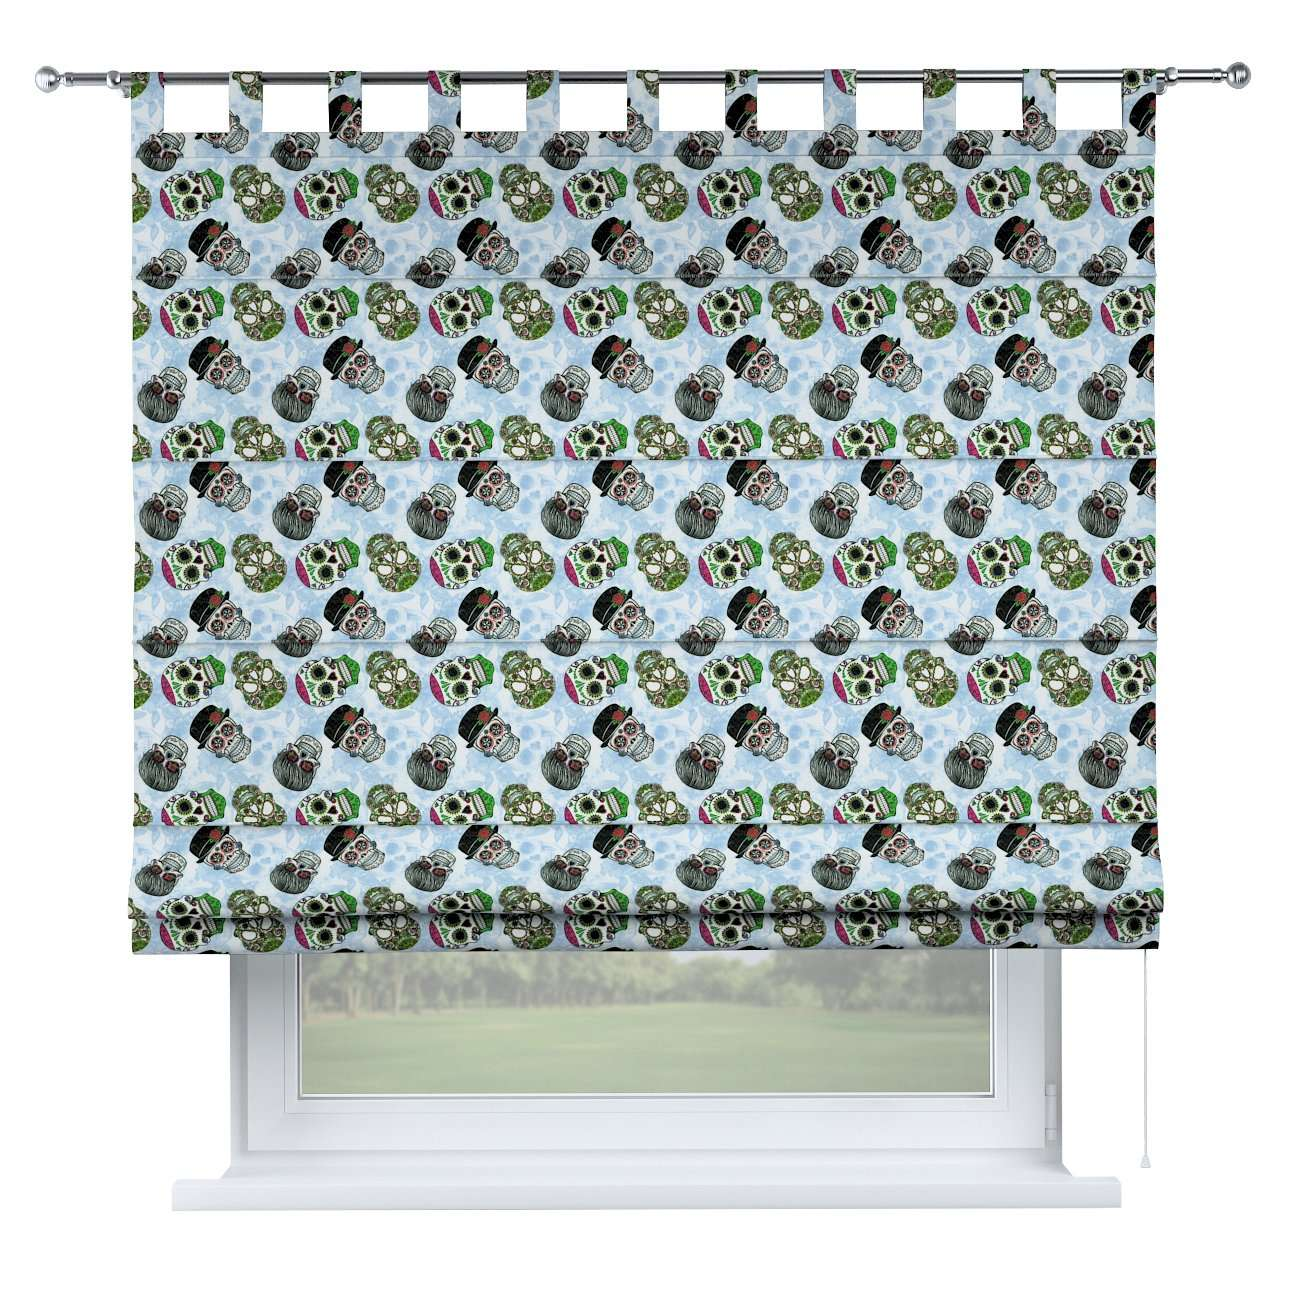 Verona tab top roman blind in collection Freestyle, fabric: 141-01